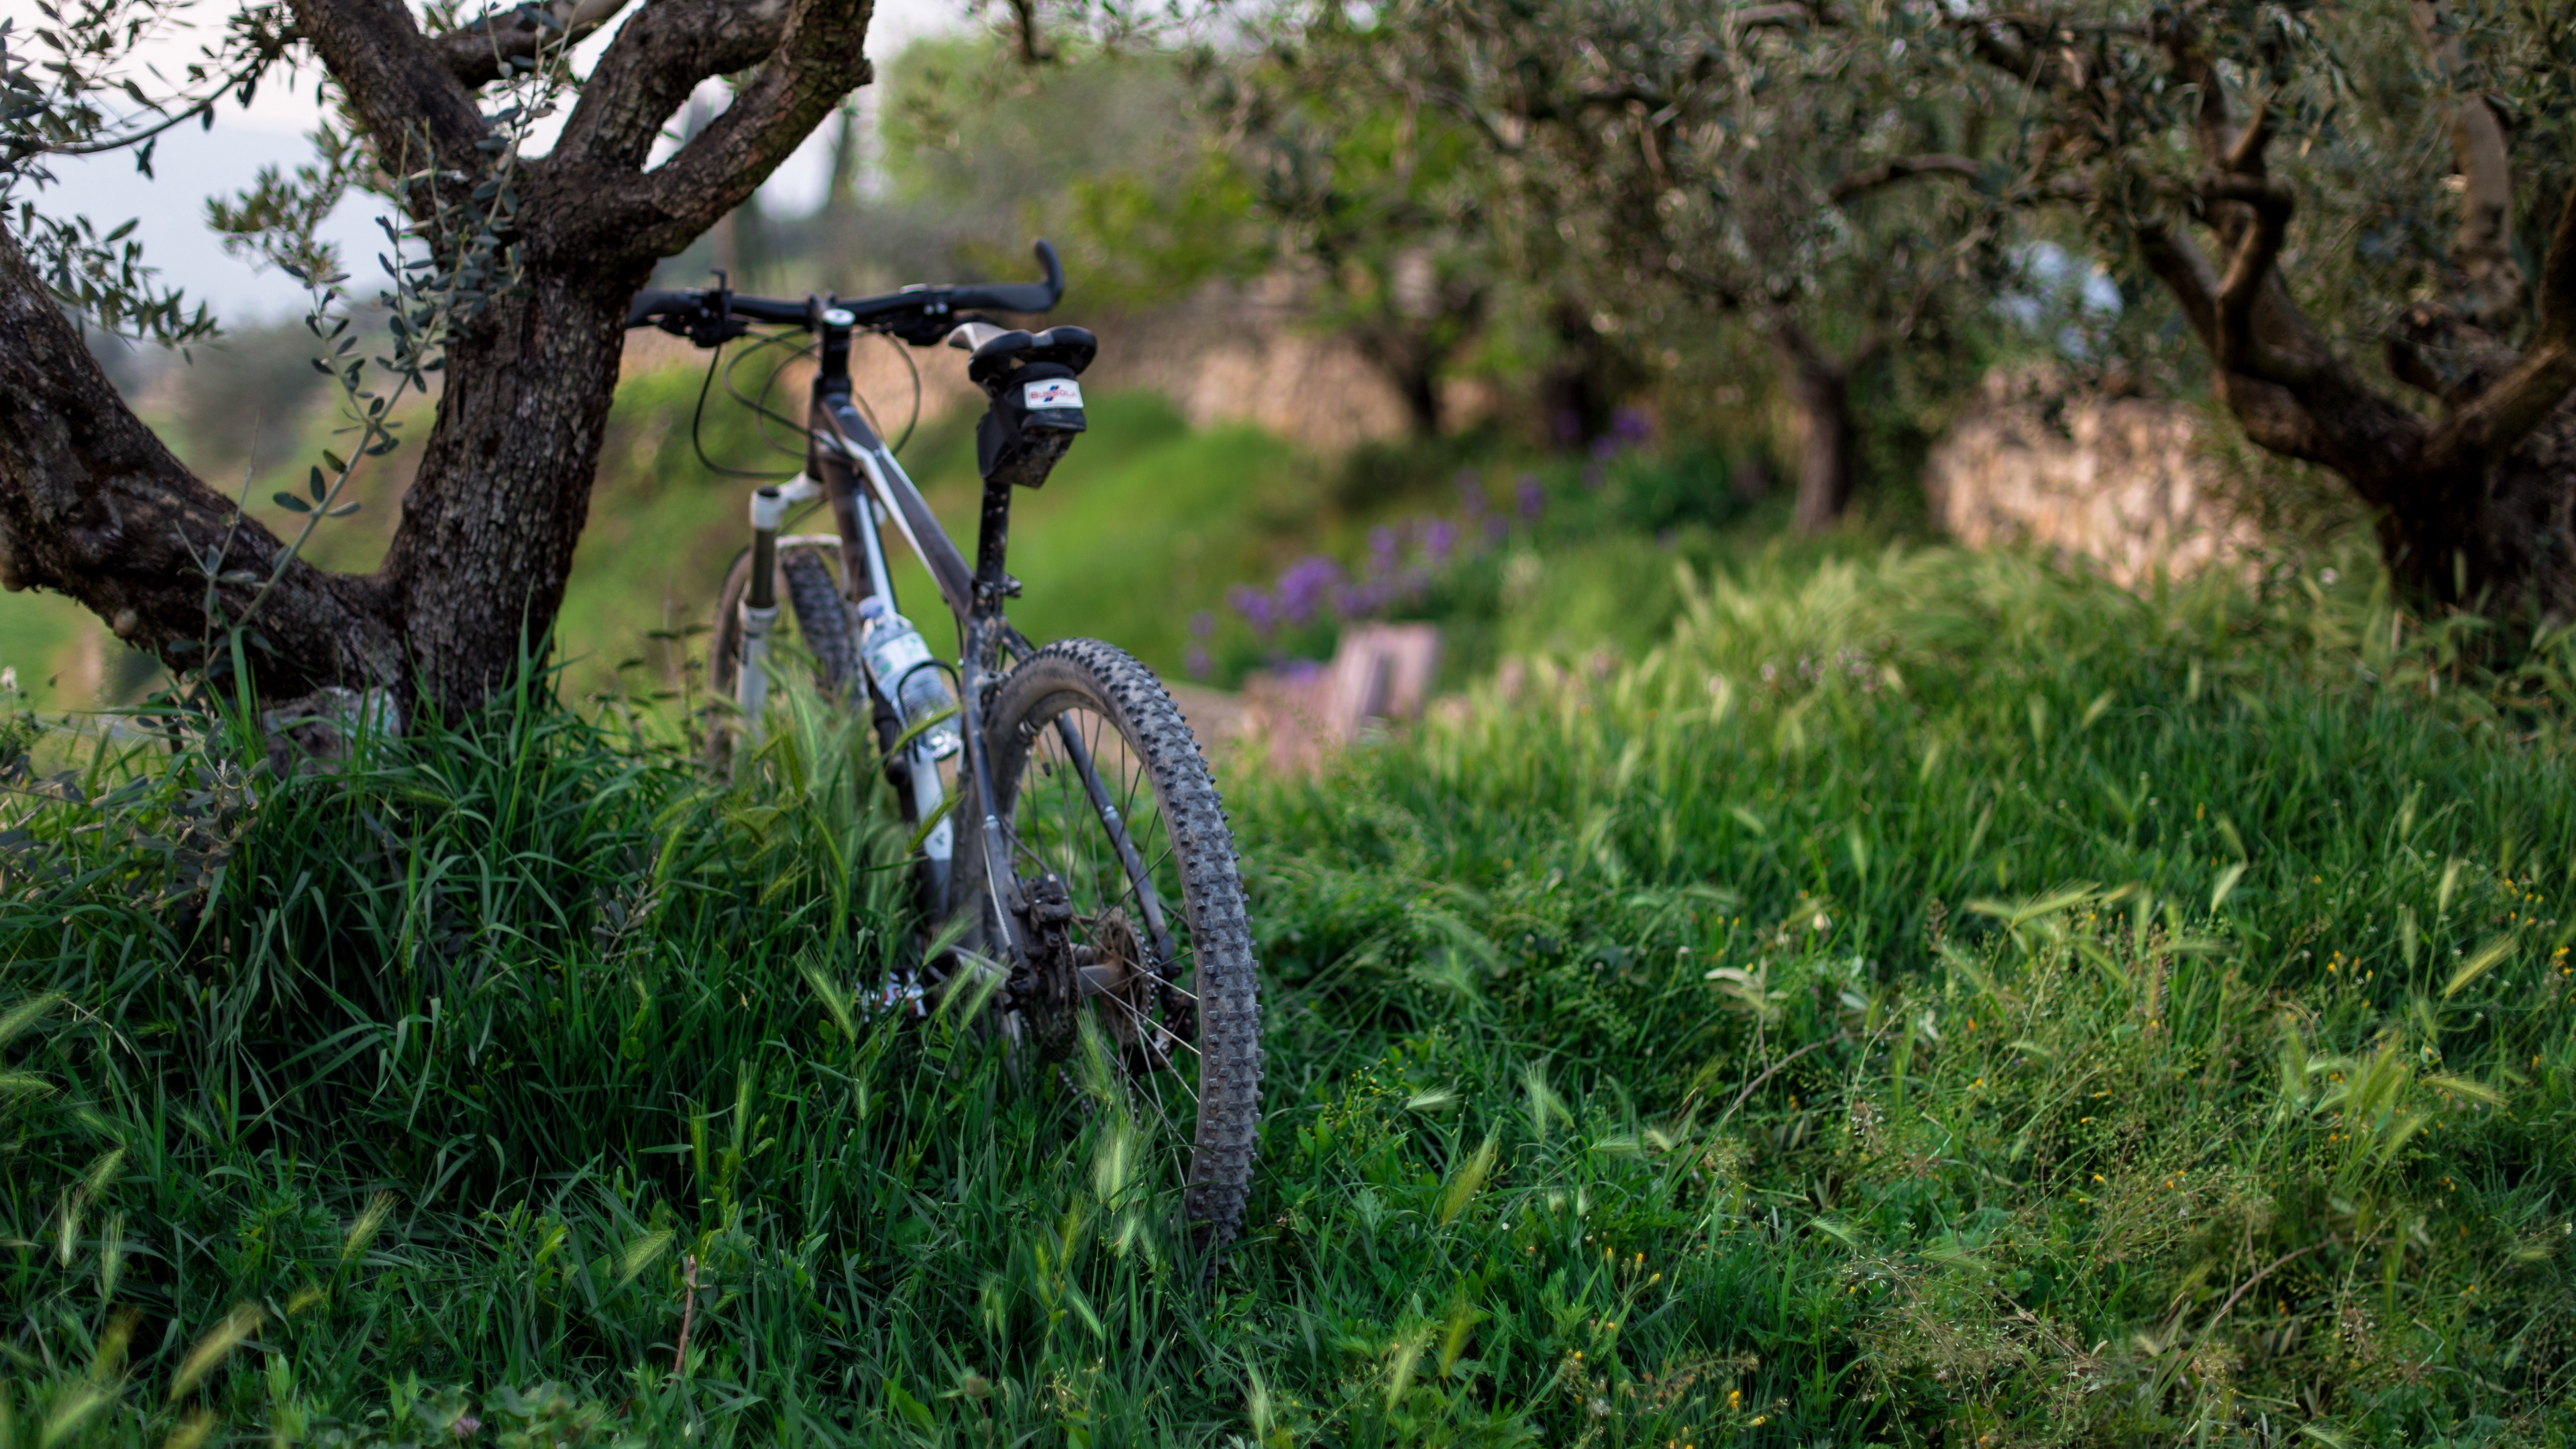 bicycle grass trees 4k 1540063286 - bicycle, grass, trees 4k - Trees, Grass, Bicycle